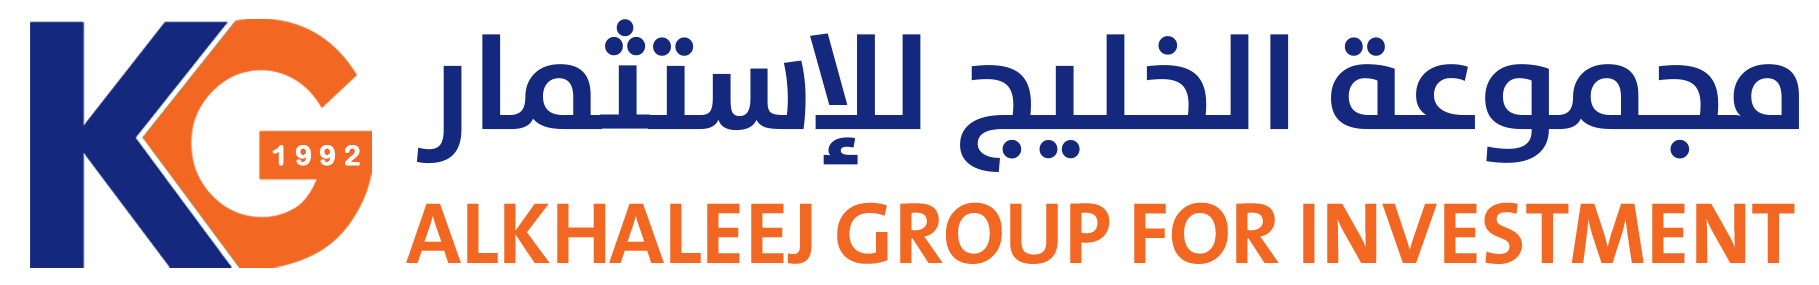 Alkhaleej Group for Multiple Investments